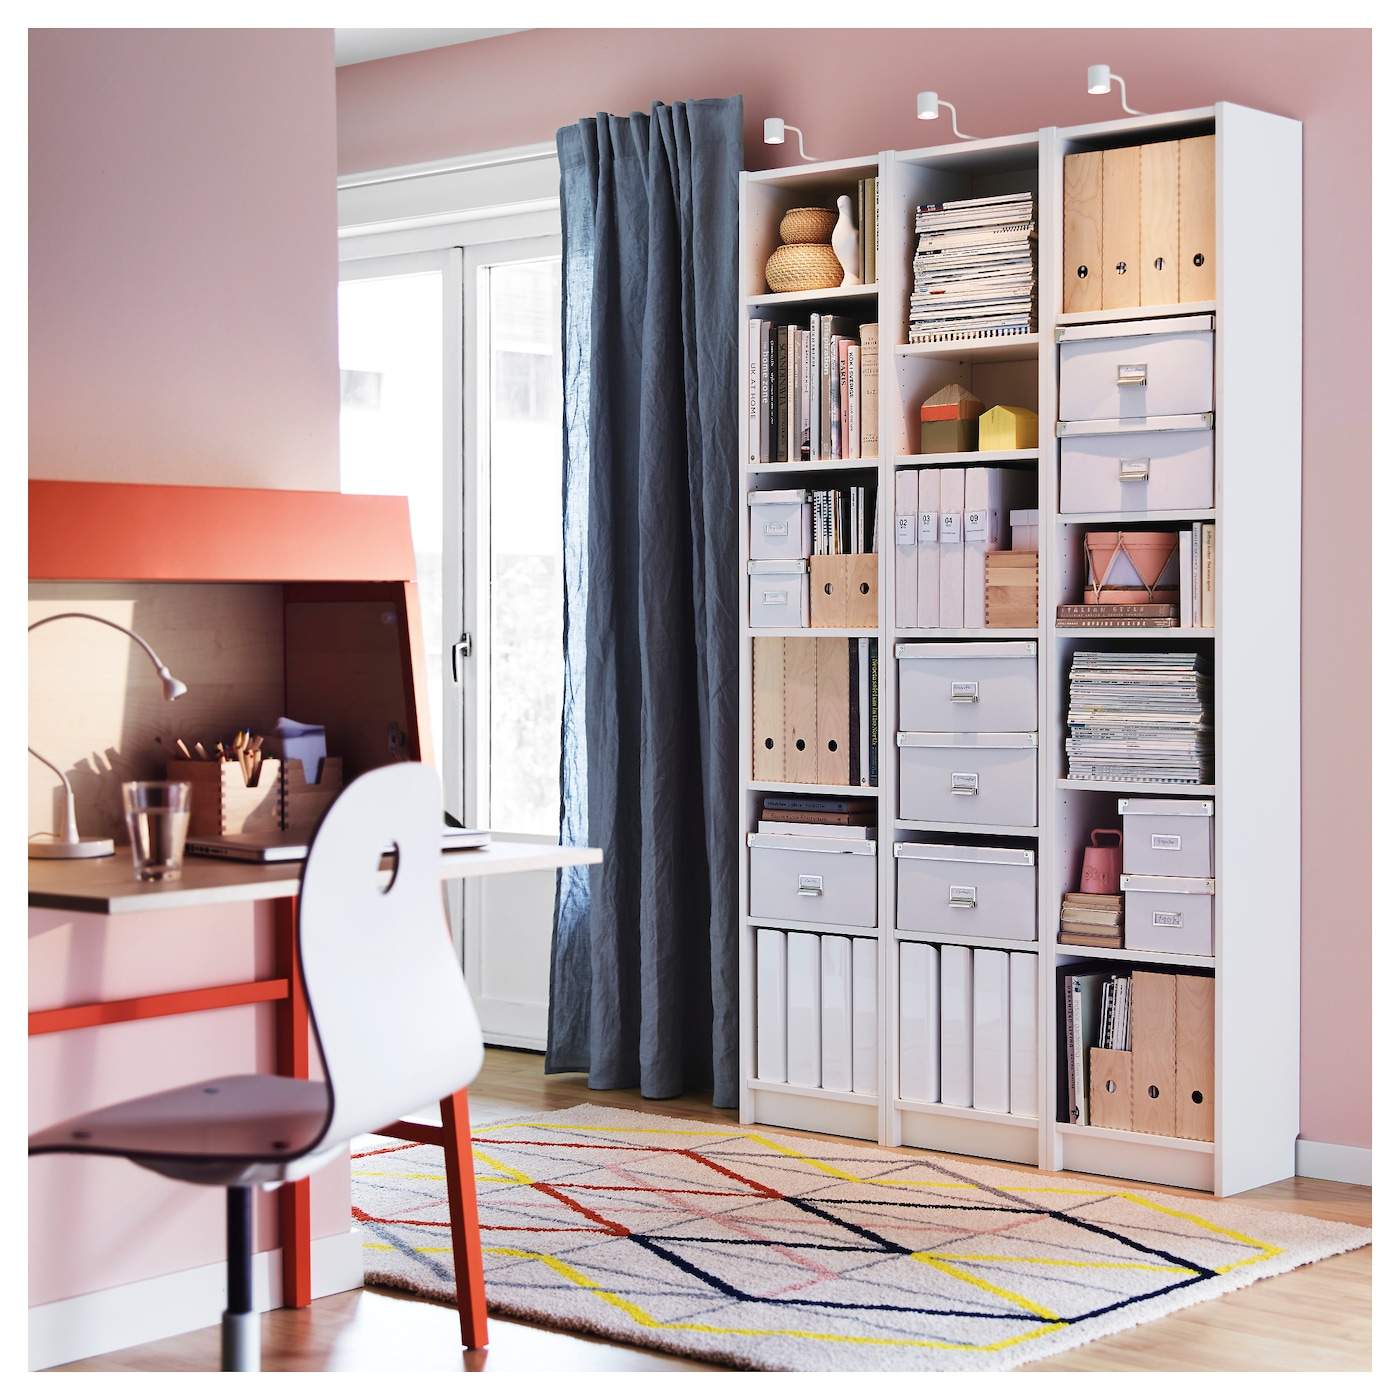 billy bookcase white 40 x 28 x 202 cm ikea. Black Bedroom Furniture Sets. Home Design Ideas